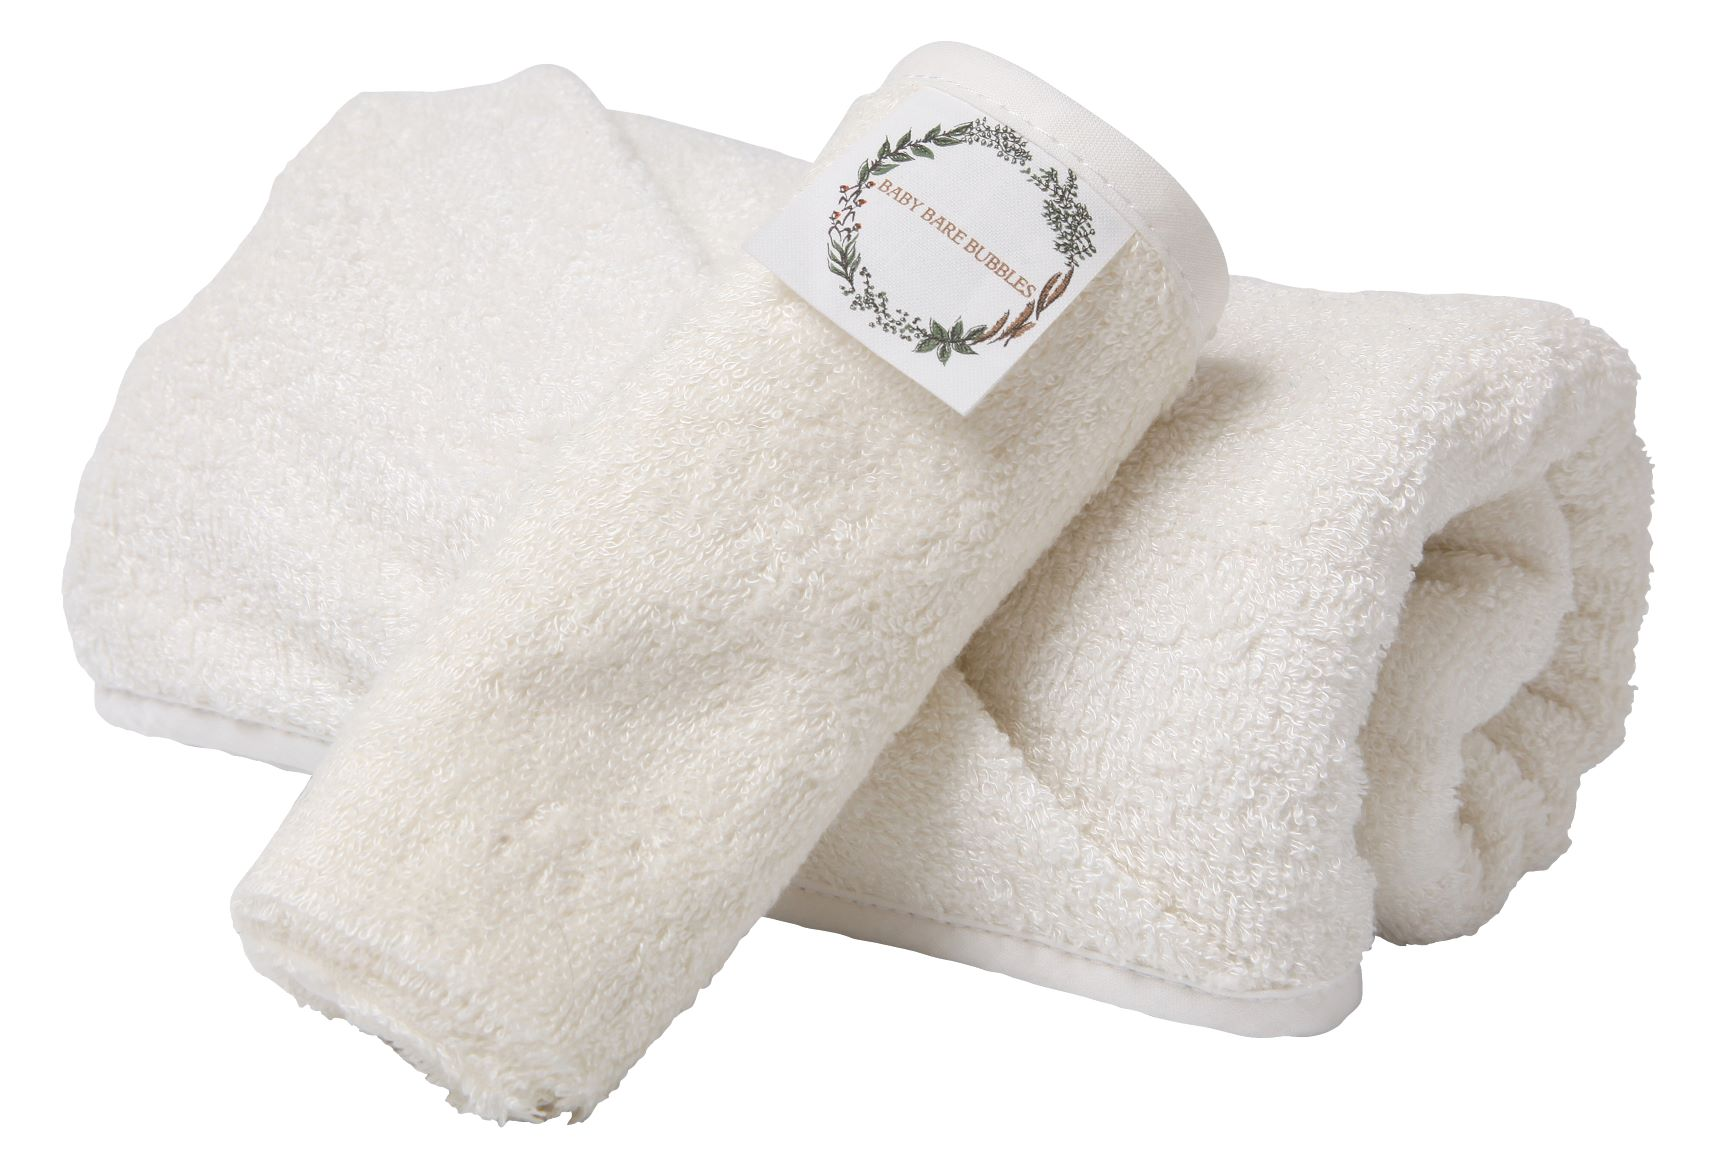 Hooded Supersoft Bamboo Baby Towel, Washcloth, Bubble Bath, Shampoo and Body Wash Set